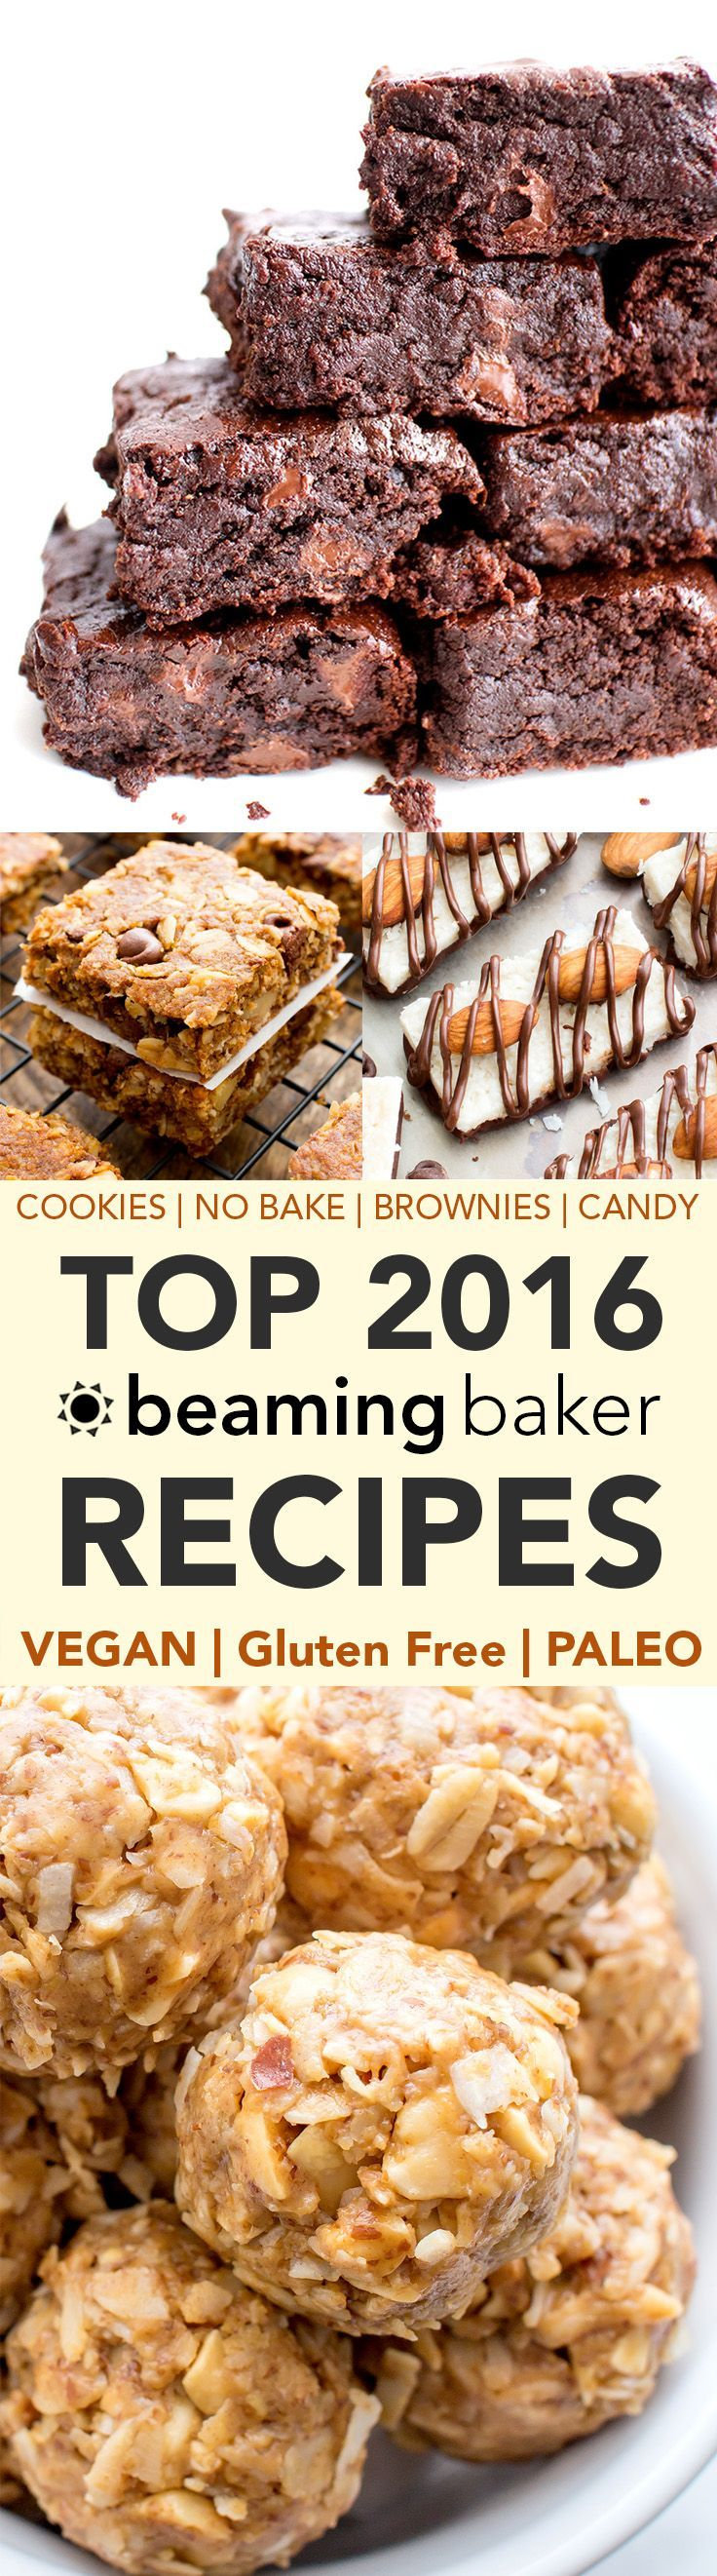 Top 2016 Recipes: A thrilling & sometimes nostalgic look back on the top 2016 recipes on Beaming Baker. Vegan, Gluten Free, Dairy-Free and Paleo treats. #Vegan #GlutenFree #Paleo #BeamingBaker